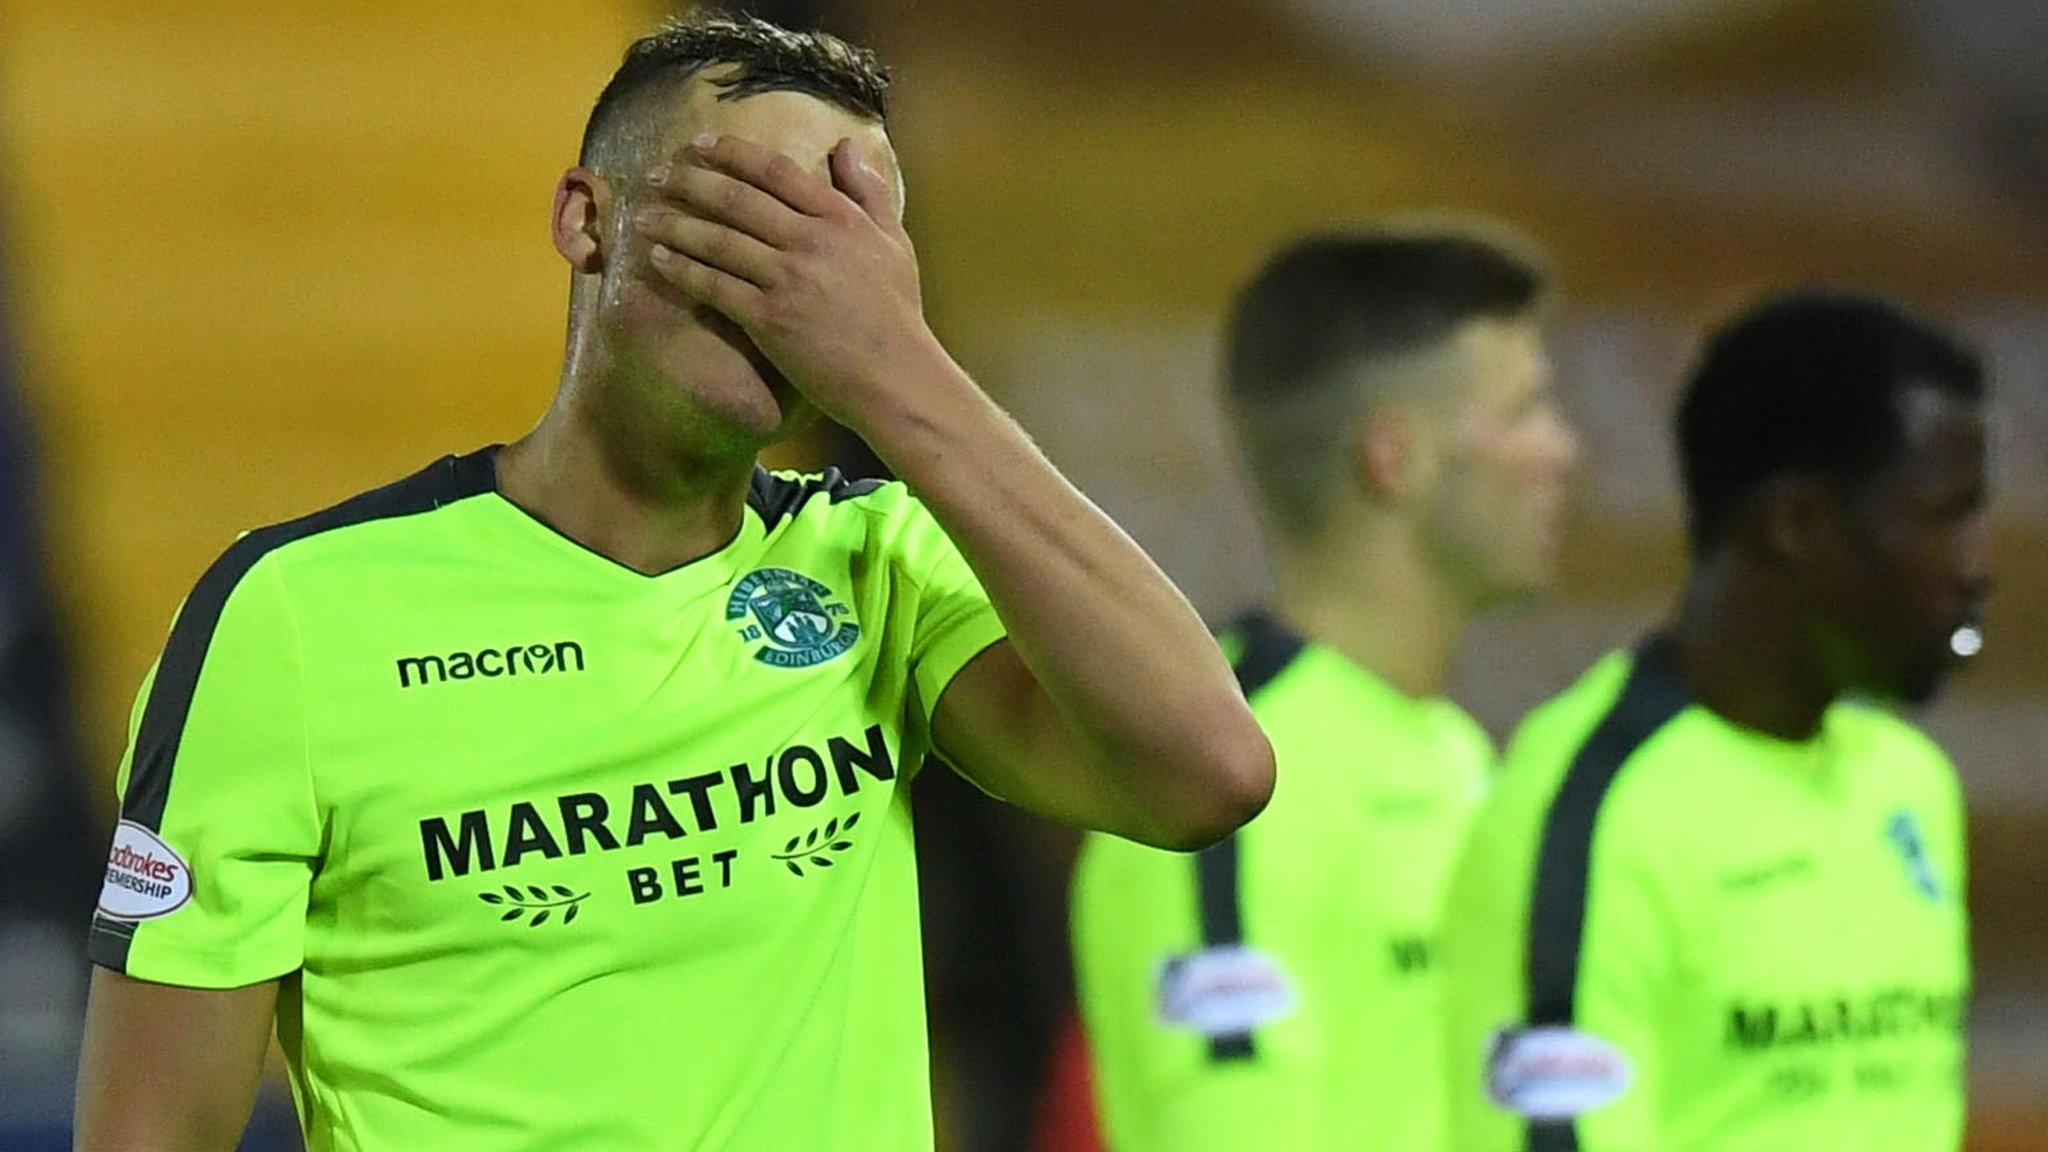 Hibs: Neil Lennon's side are six without a win. What has gone wrong?